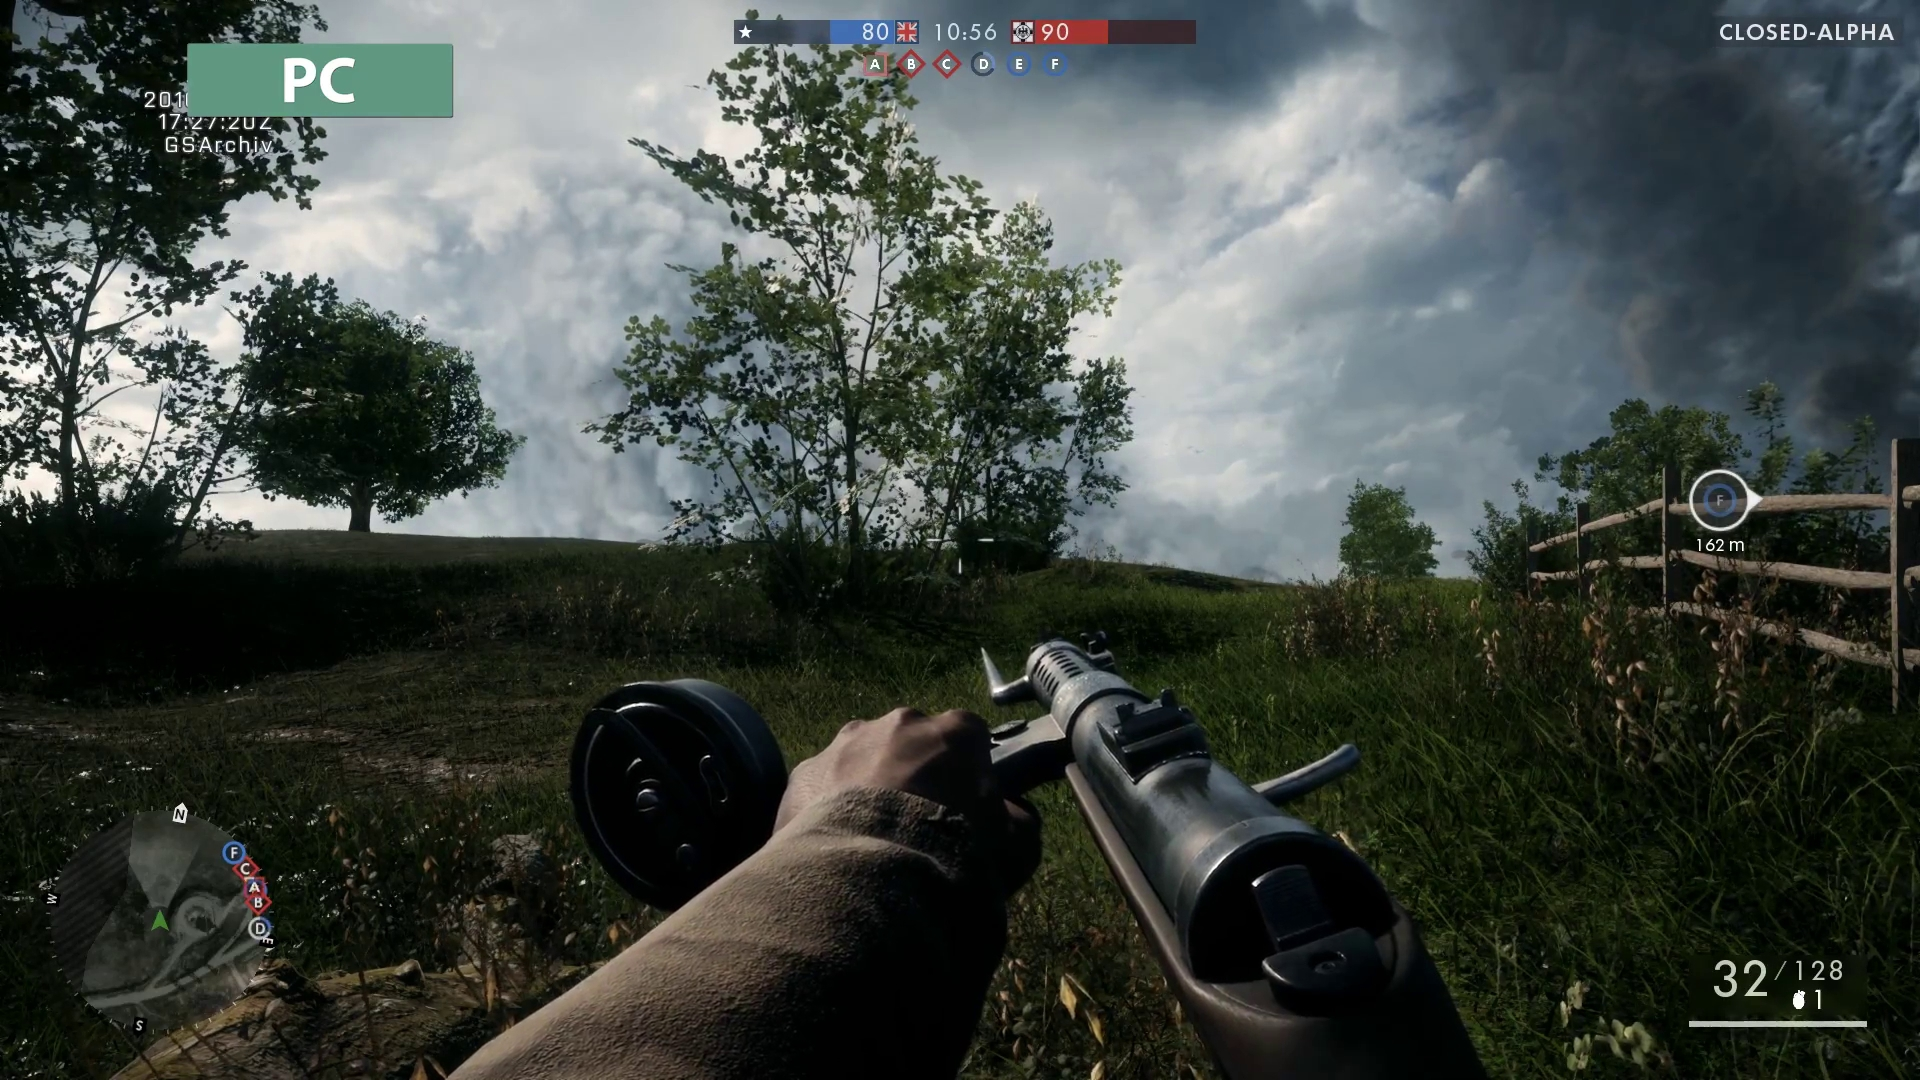 Battlefield 1 Pc Ultra Vs Ps4 Xbox One Alpha Comparison Game Edit Version Seems To Have More Foliage